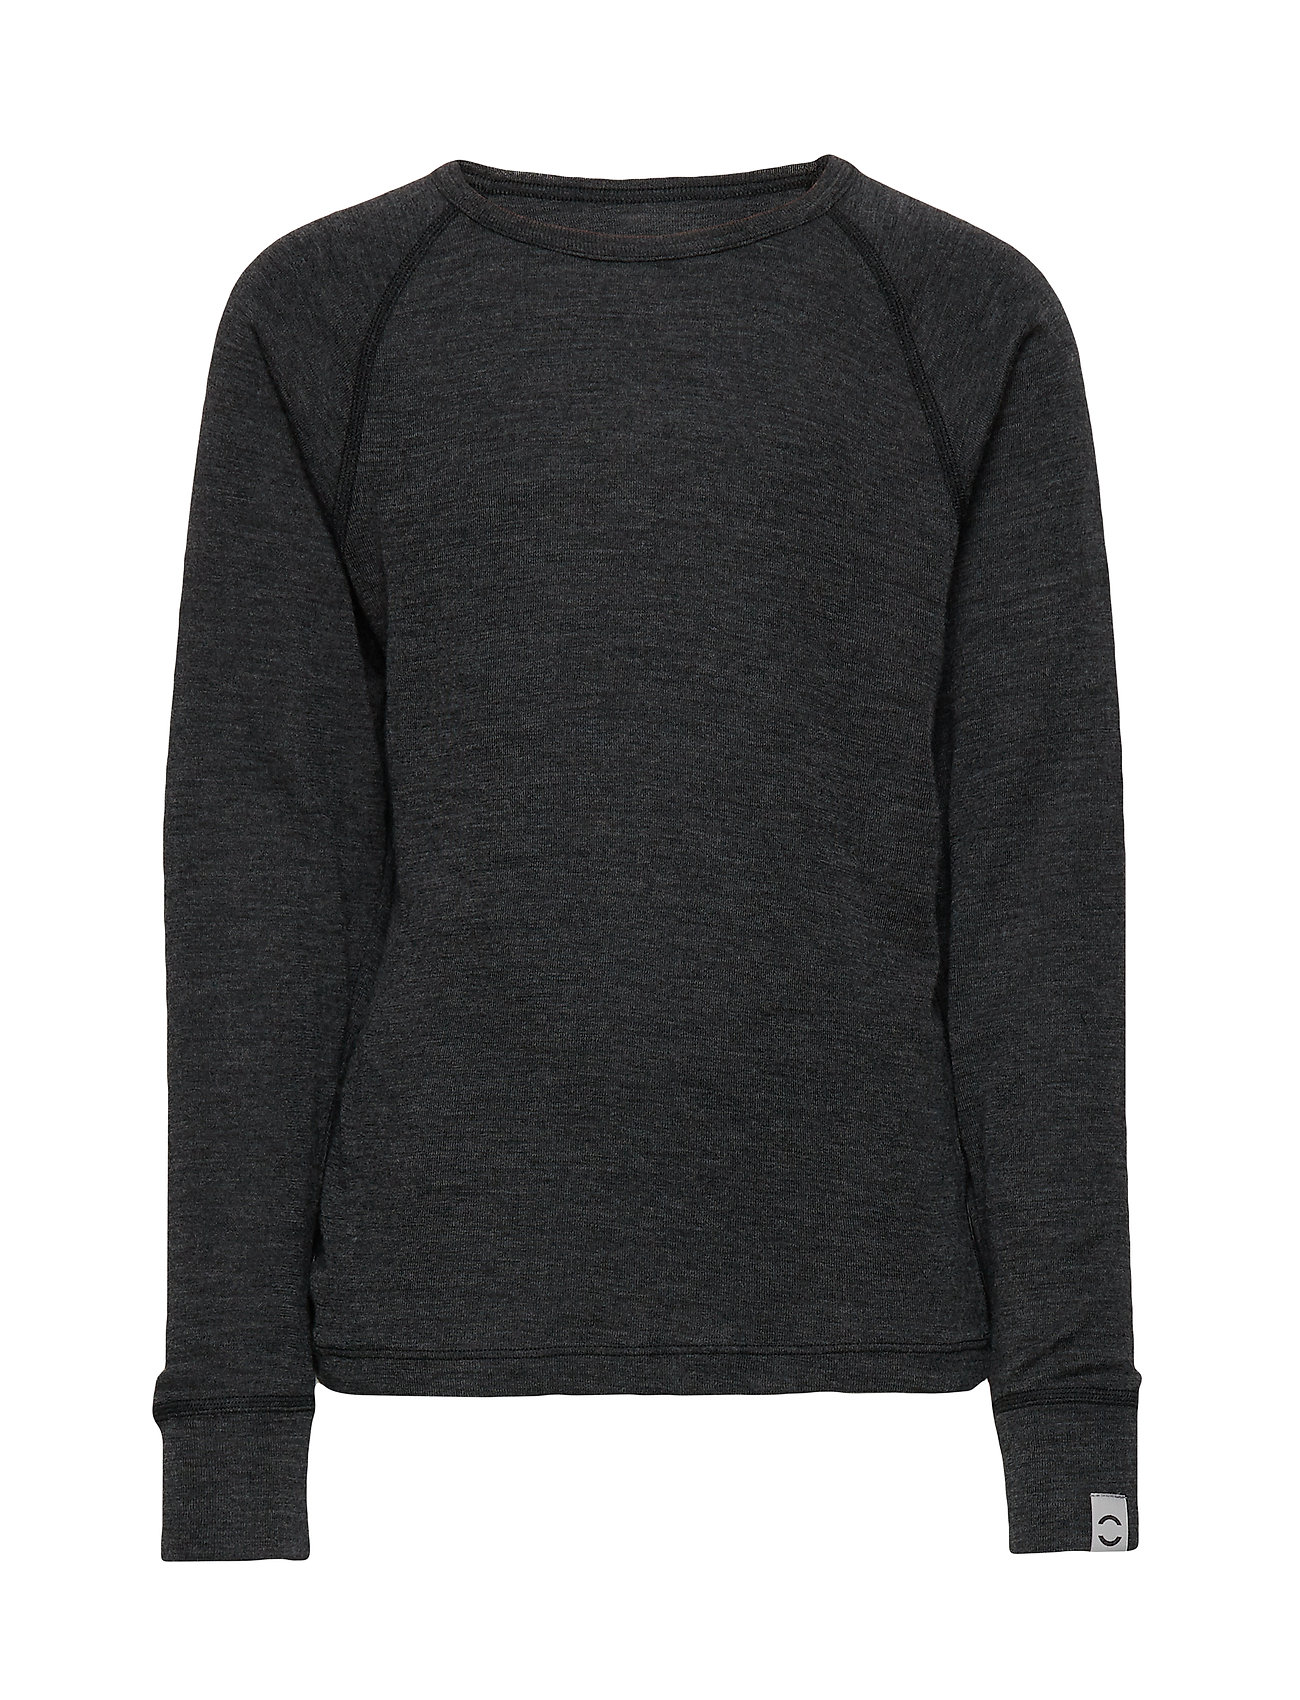 Image of Wool Ls Top Langærmet T-shirt Grå Mikk-Line (3067539505)